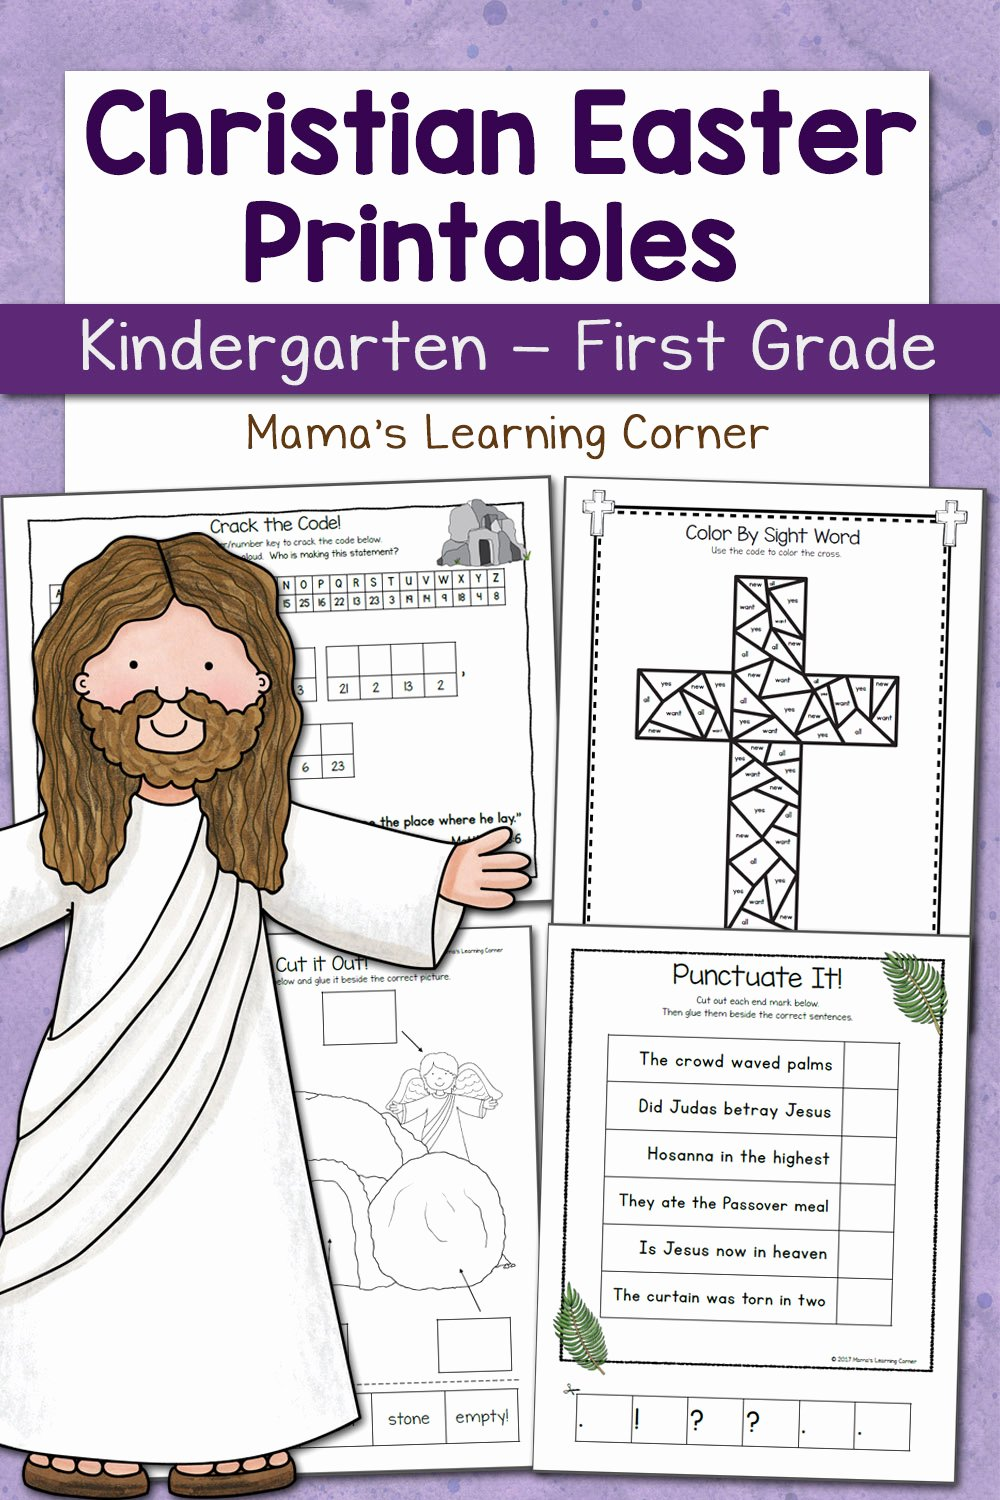 Printable Easter Worksheets for Preschoolers Inspirational Christian Easter Worksheets for Kindergarten and First Grade